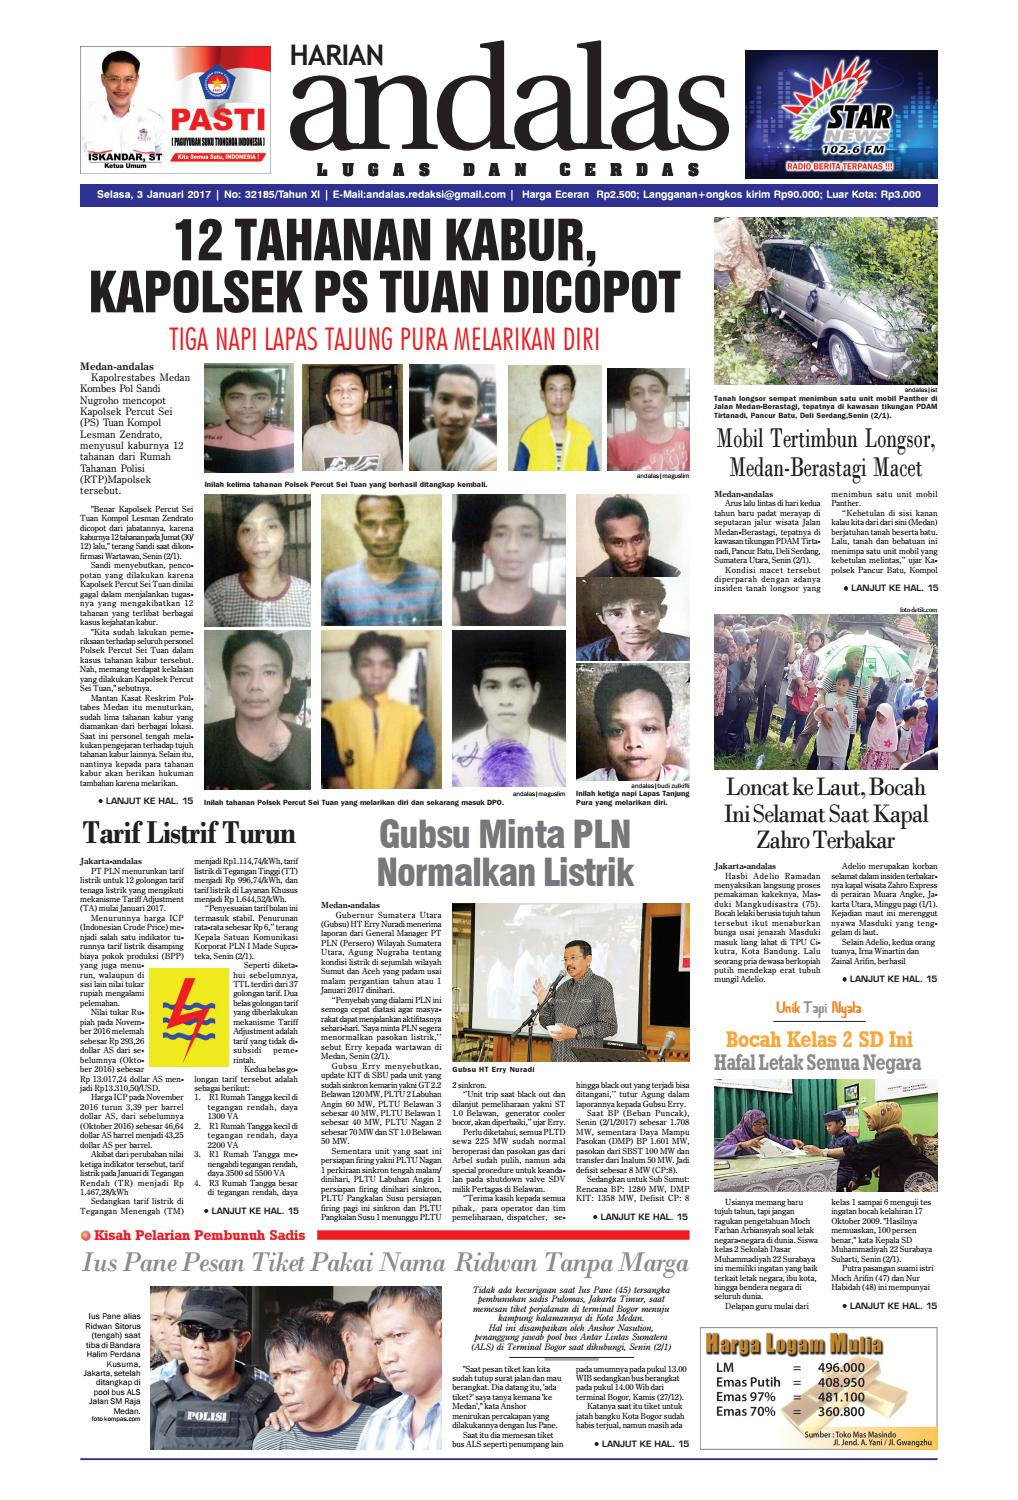 Epaper Andalas Edisi Selasa 3 Januari 2017 By Media Issuu Loop Ramadhan Kompor Lapangan Windproof